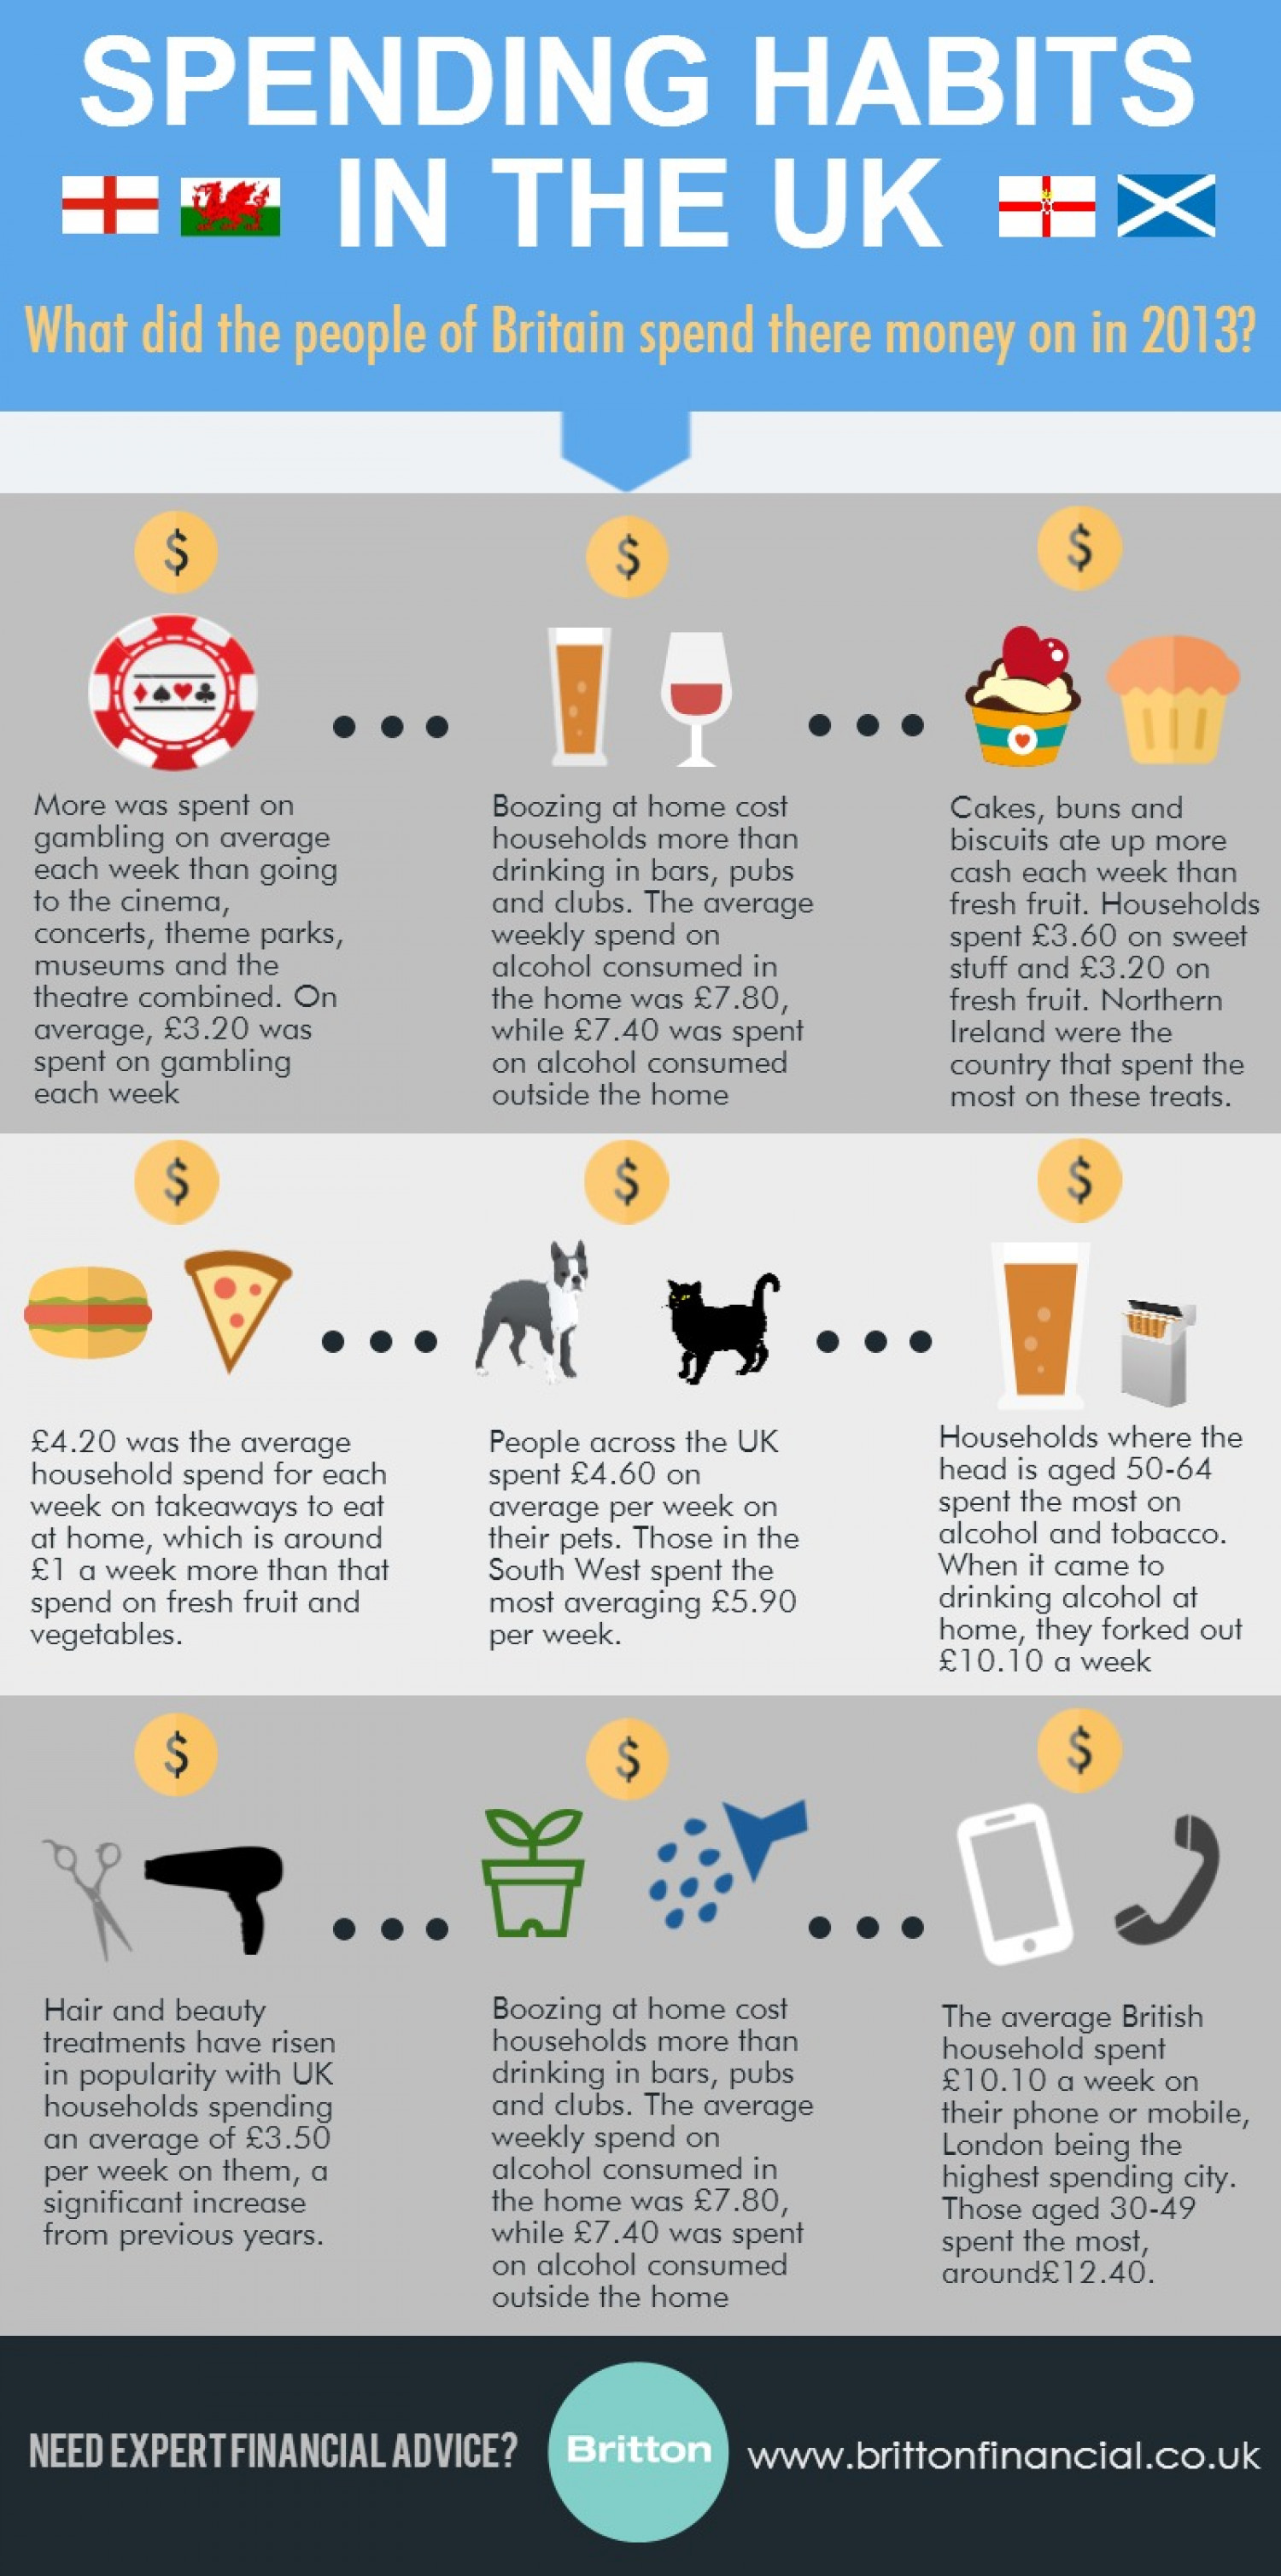 Spending Habits in the UK 2013 Infographic